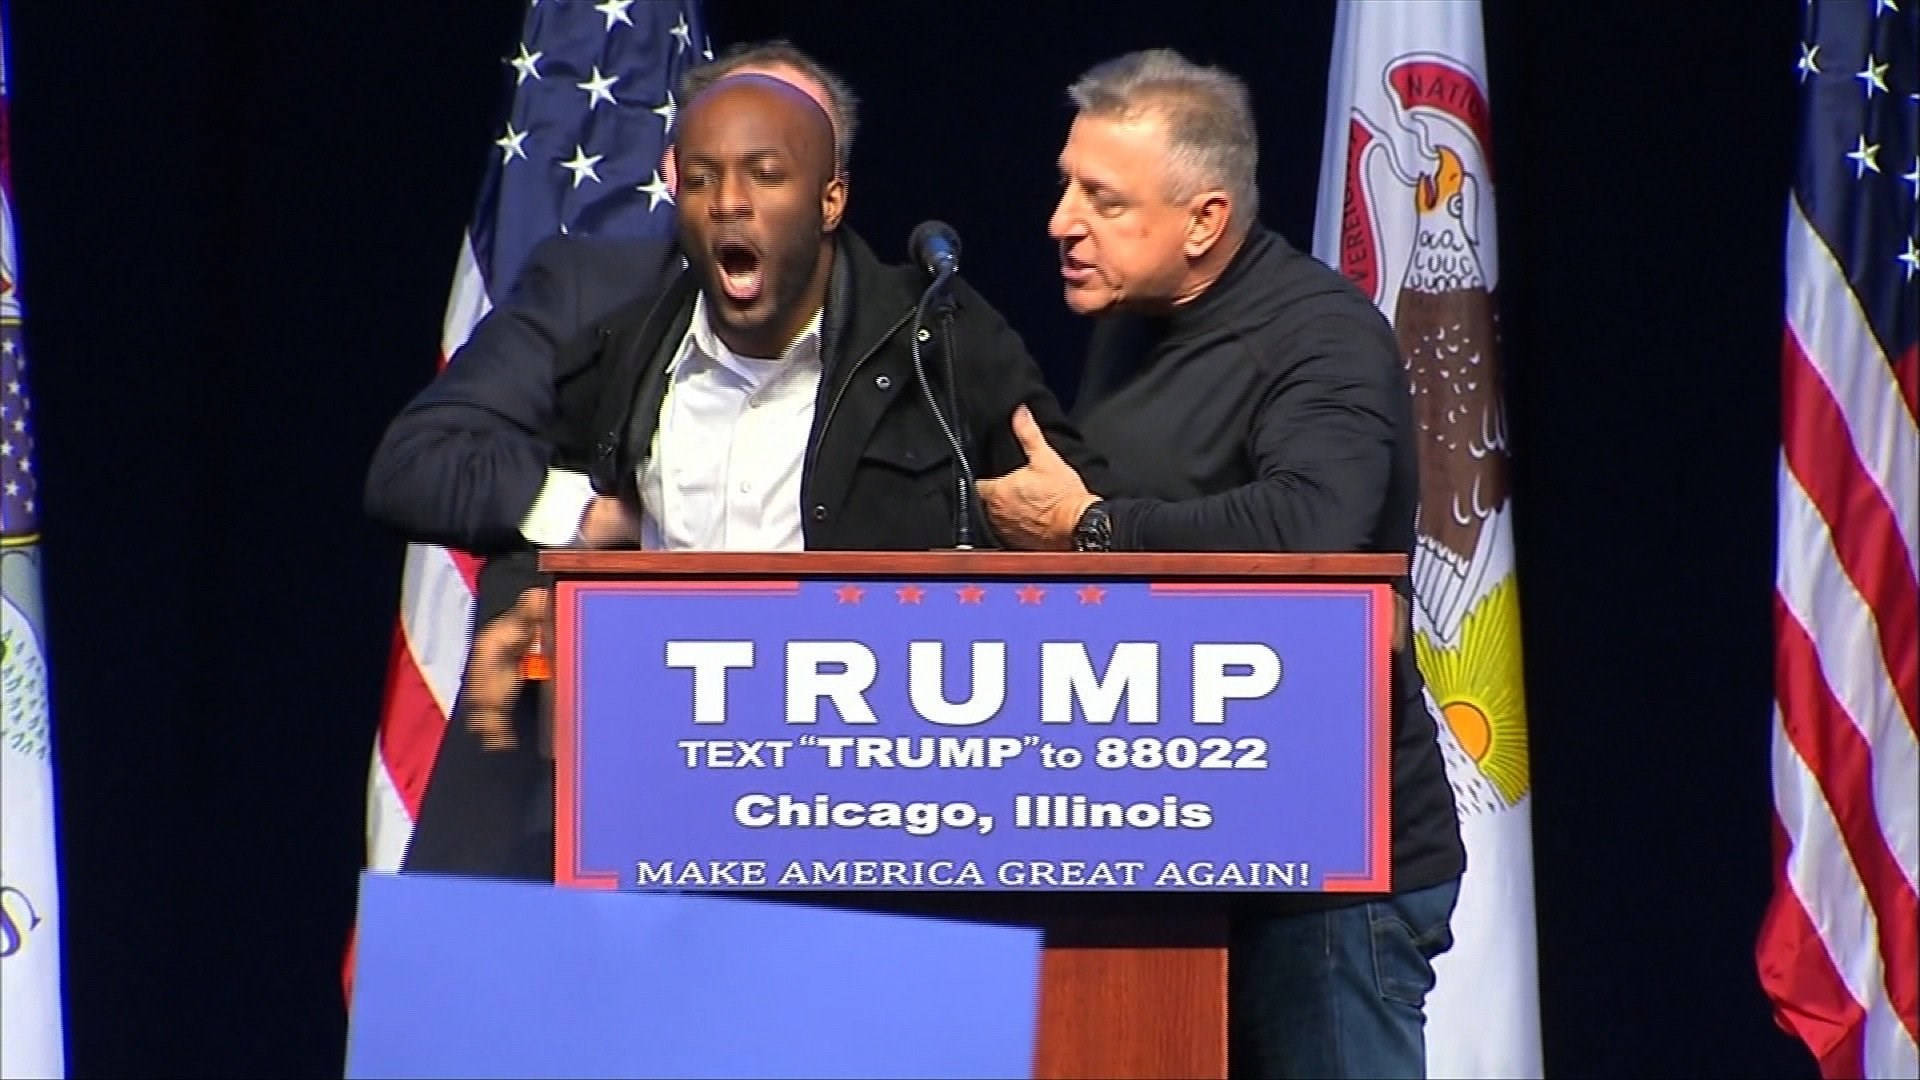 Protesters clash after Chicago rally postponed